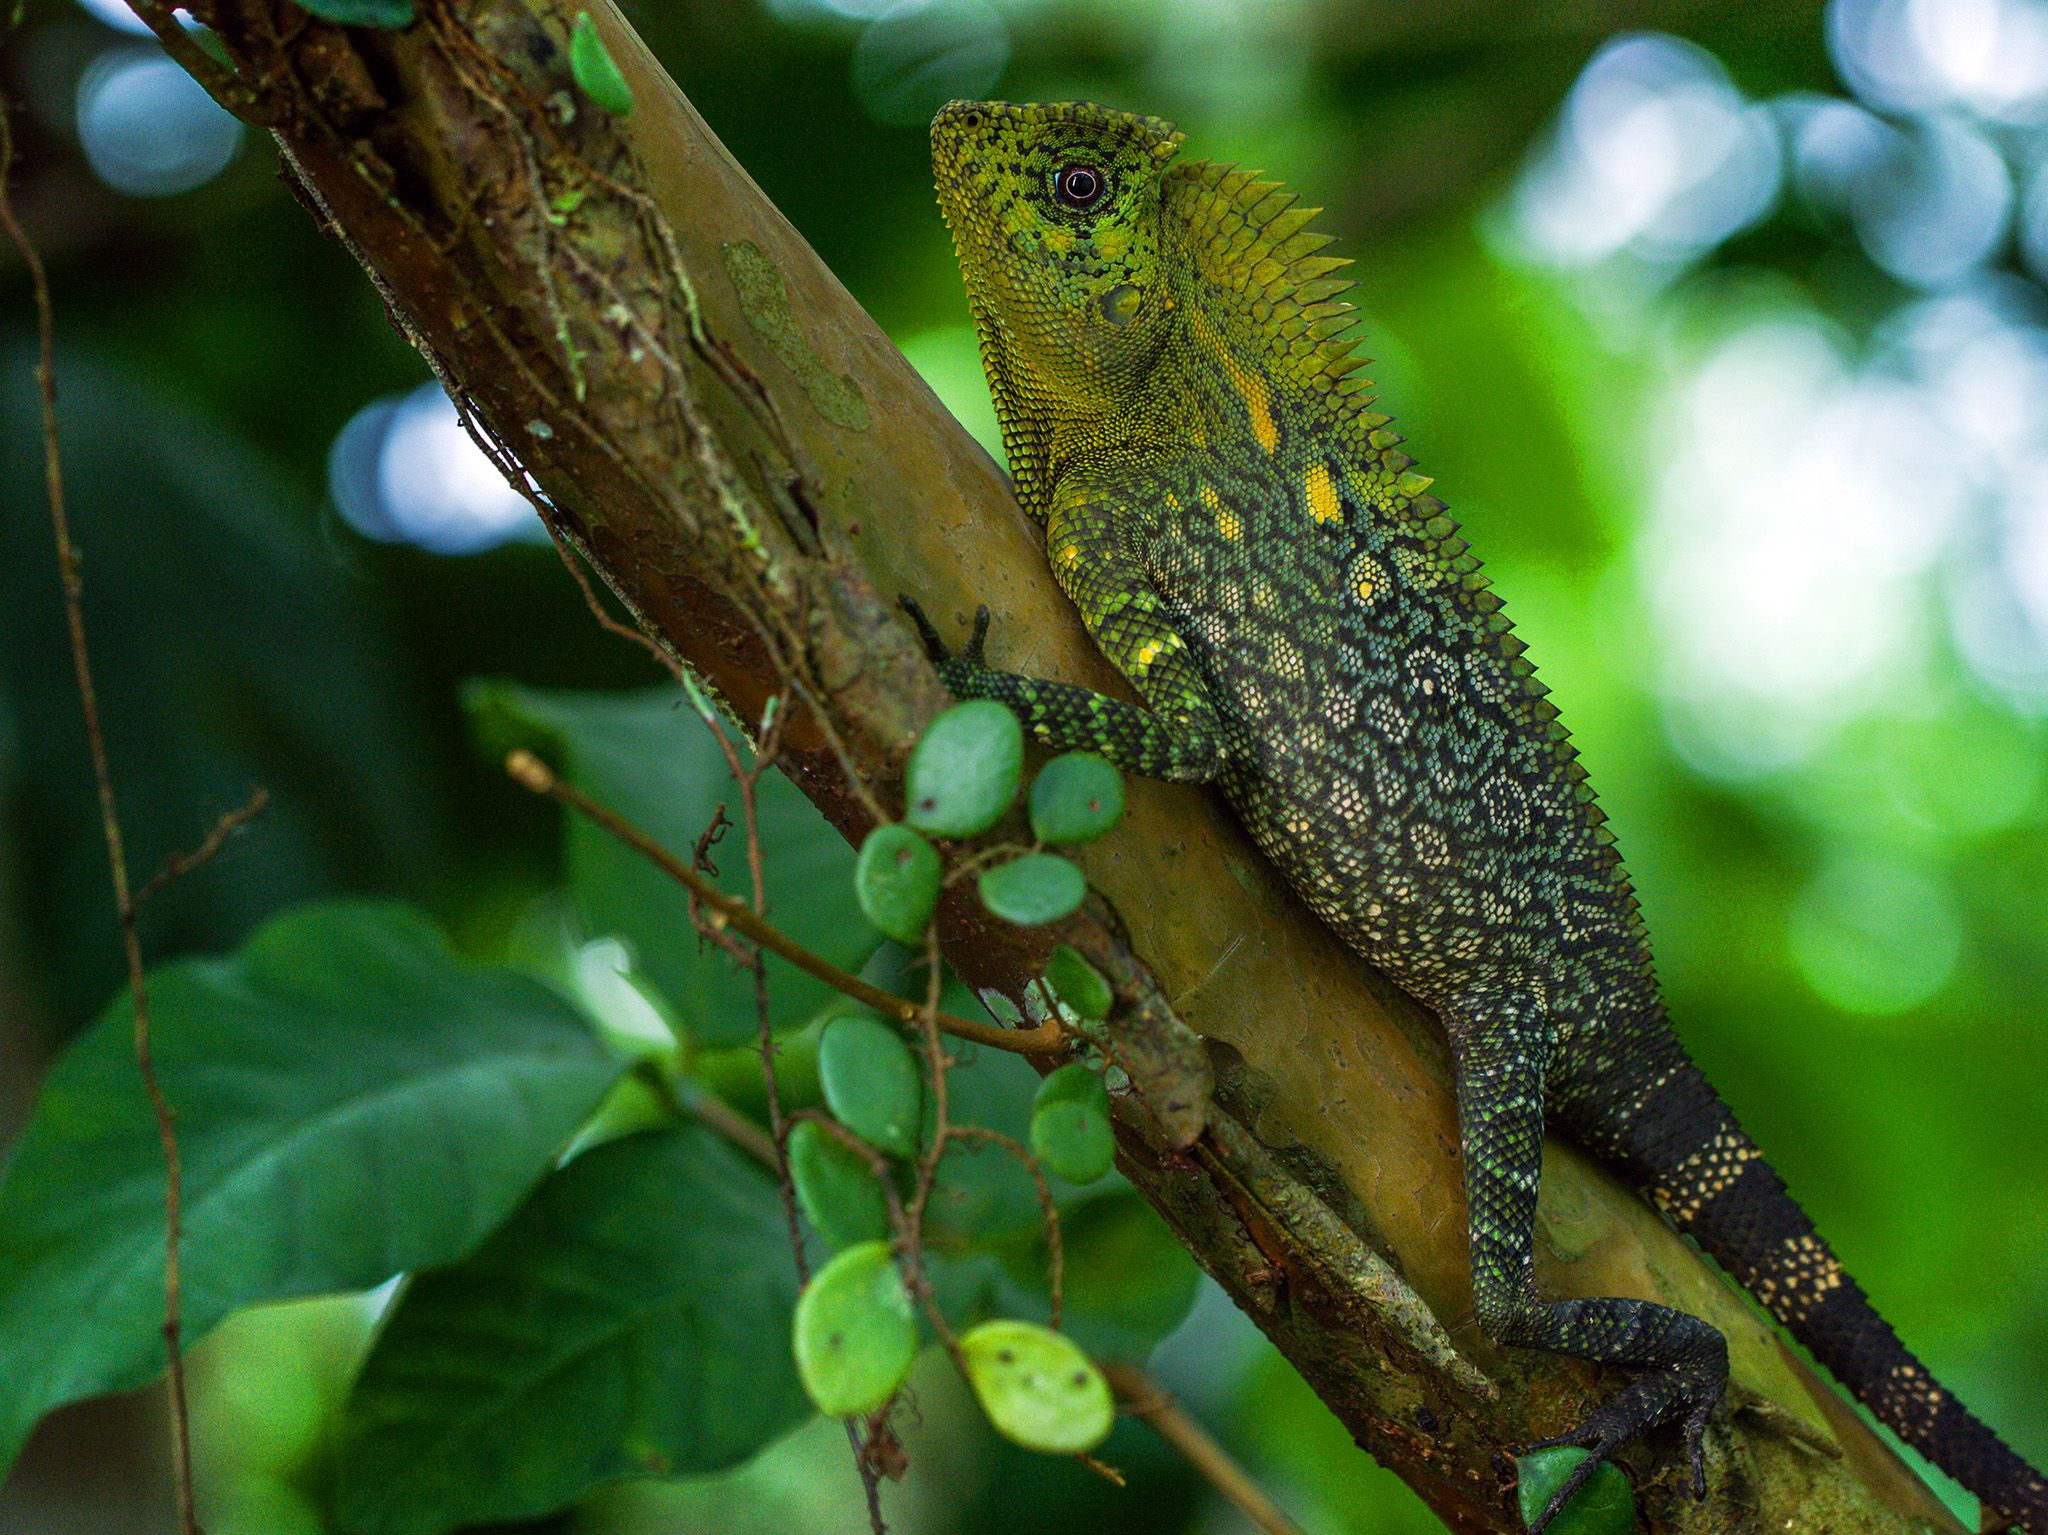 Java, Indonesia:  Lizard on log. This image is from Dead by Dawn. [Foto del giorno - marzo 2019]